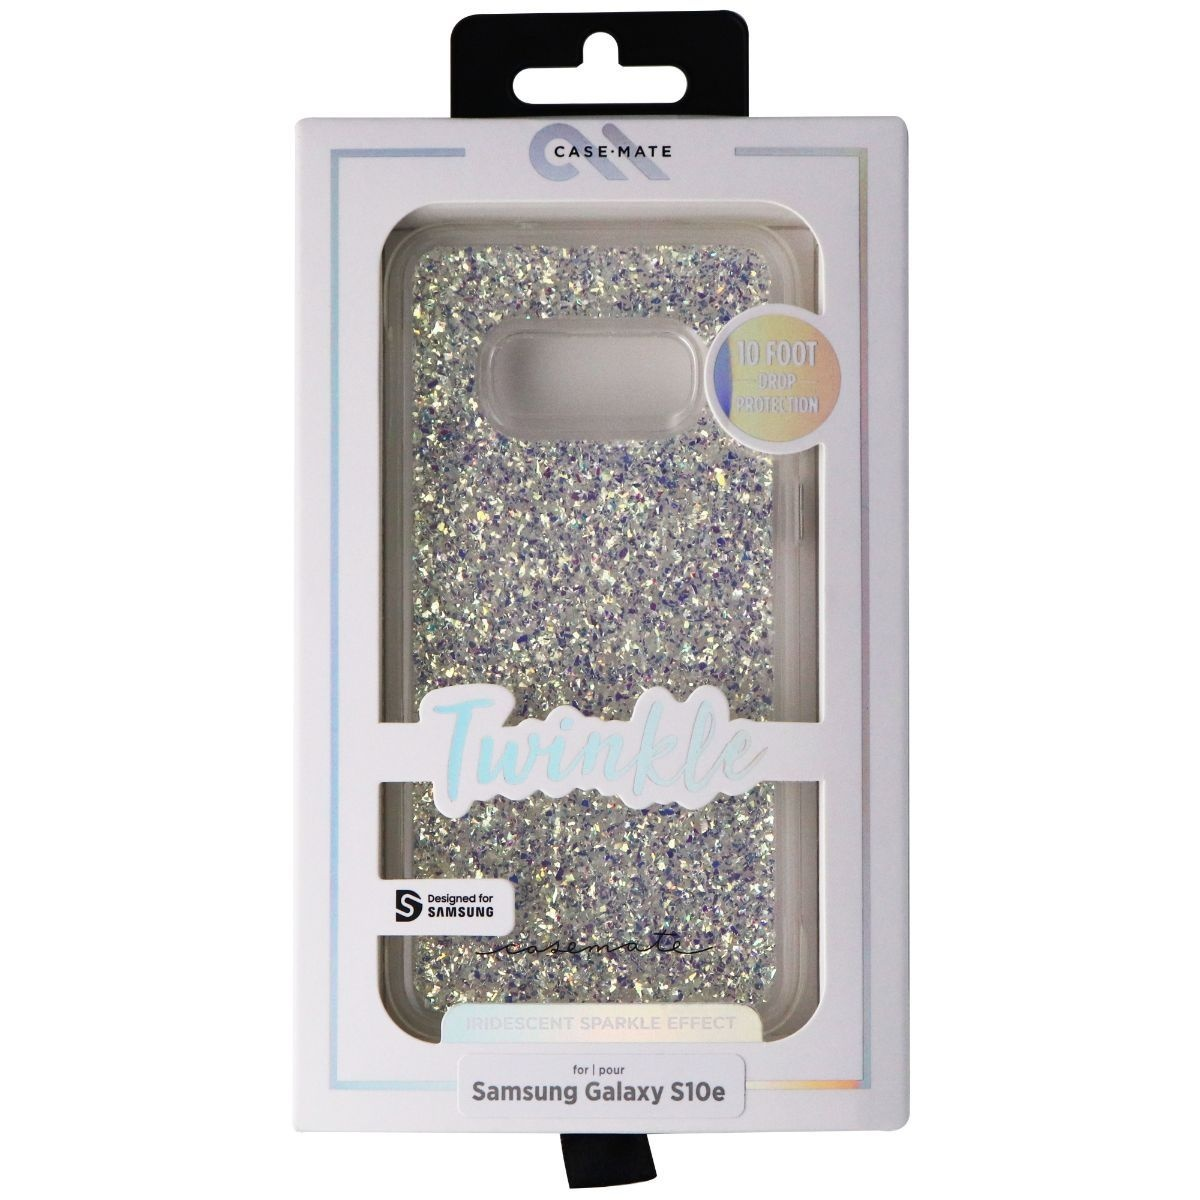 Case-Mate Twinkle Case for Samsung Galaxy S10e - Stardust (Clear/Iridescent)